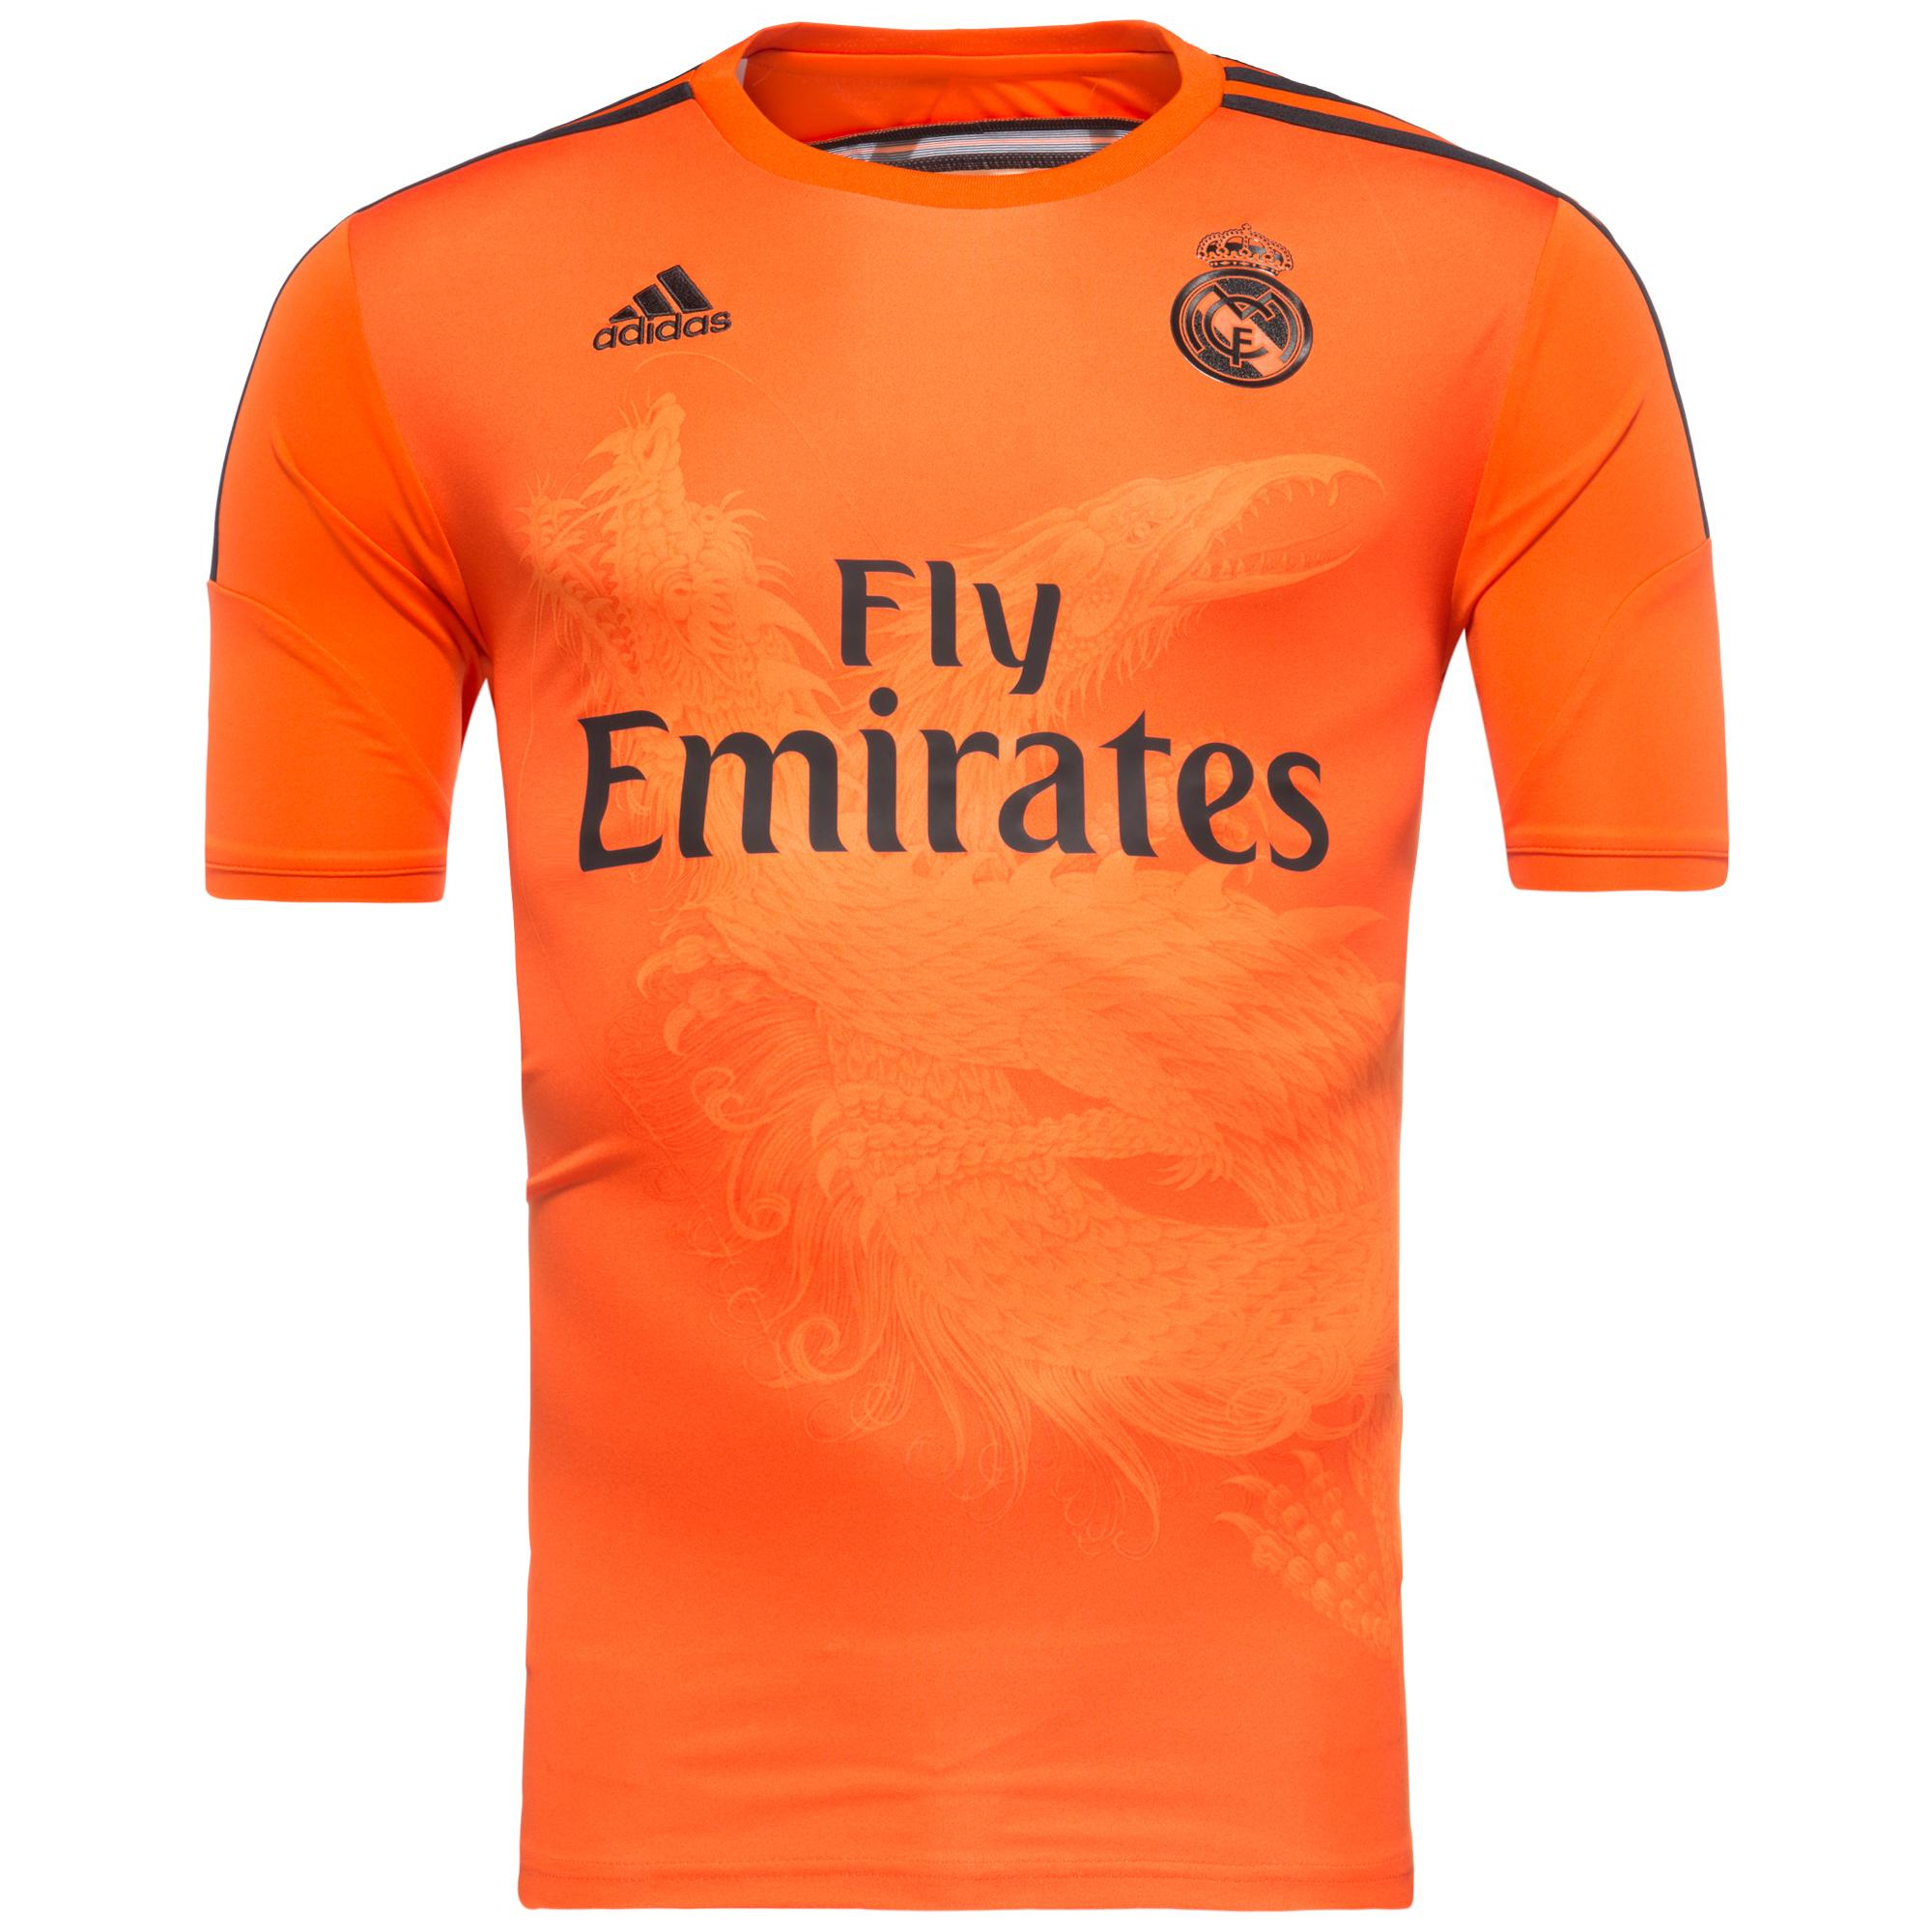 Real Madrid Målvaktströja 2014/15 Orange Barn